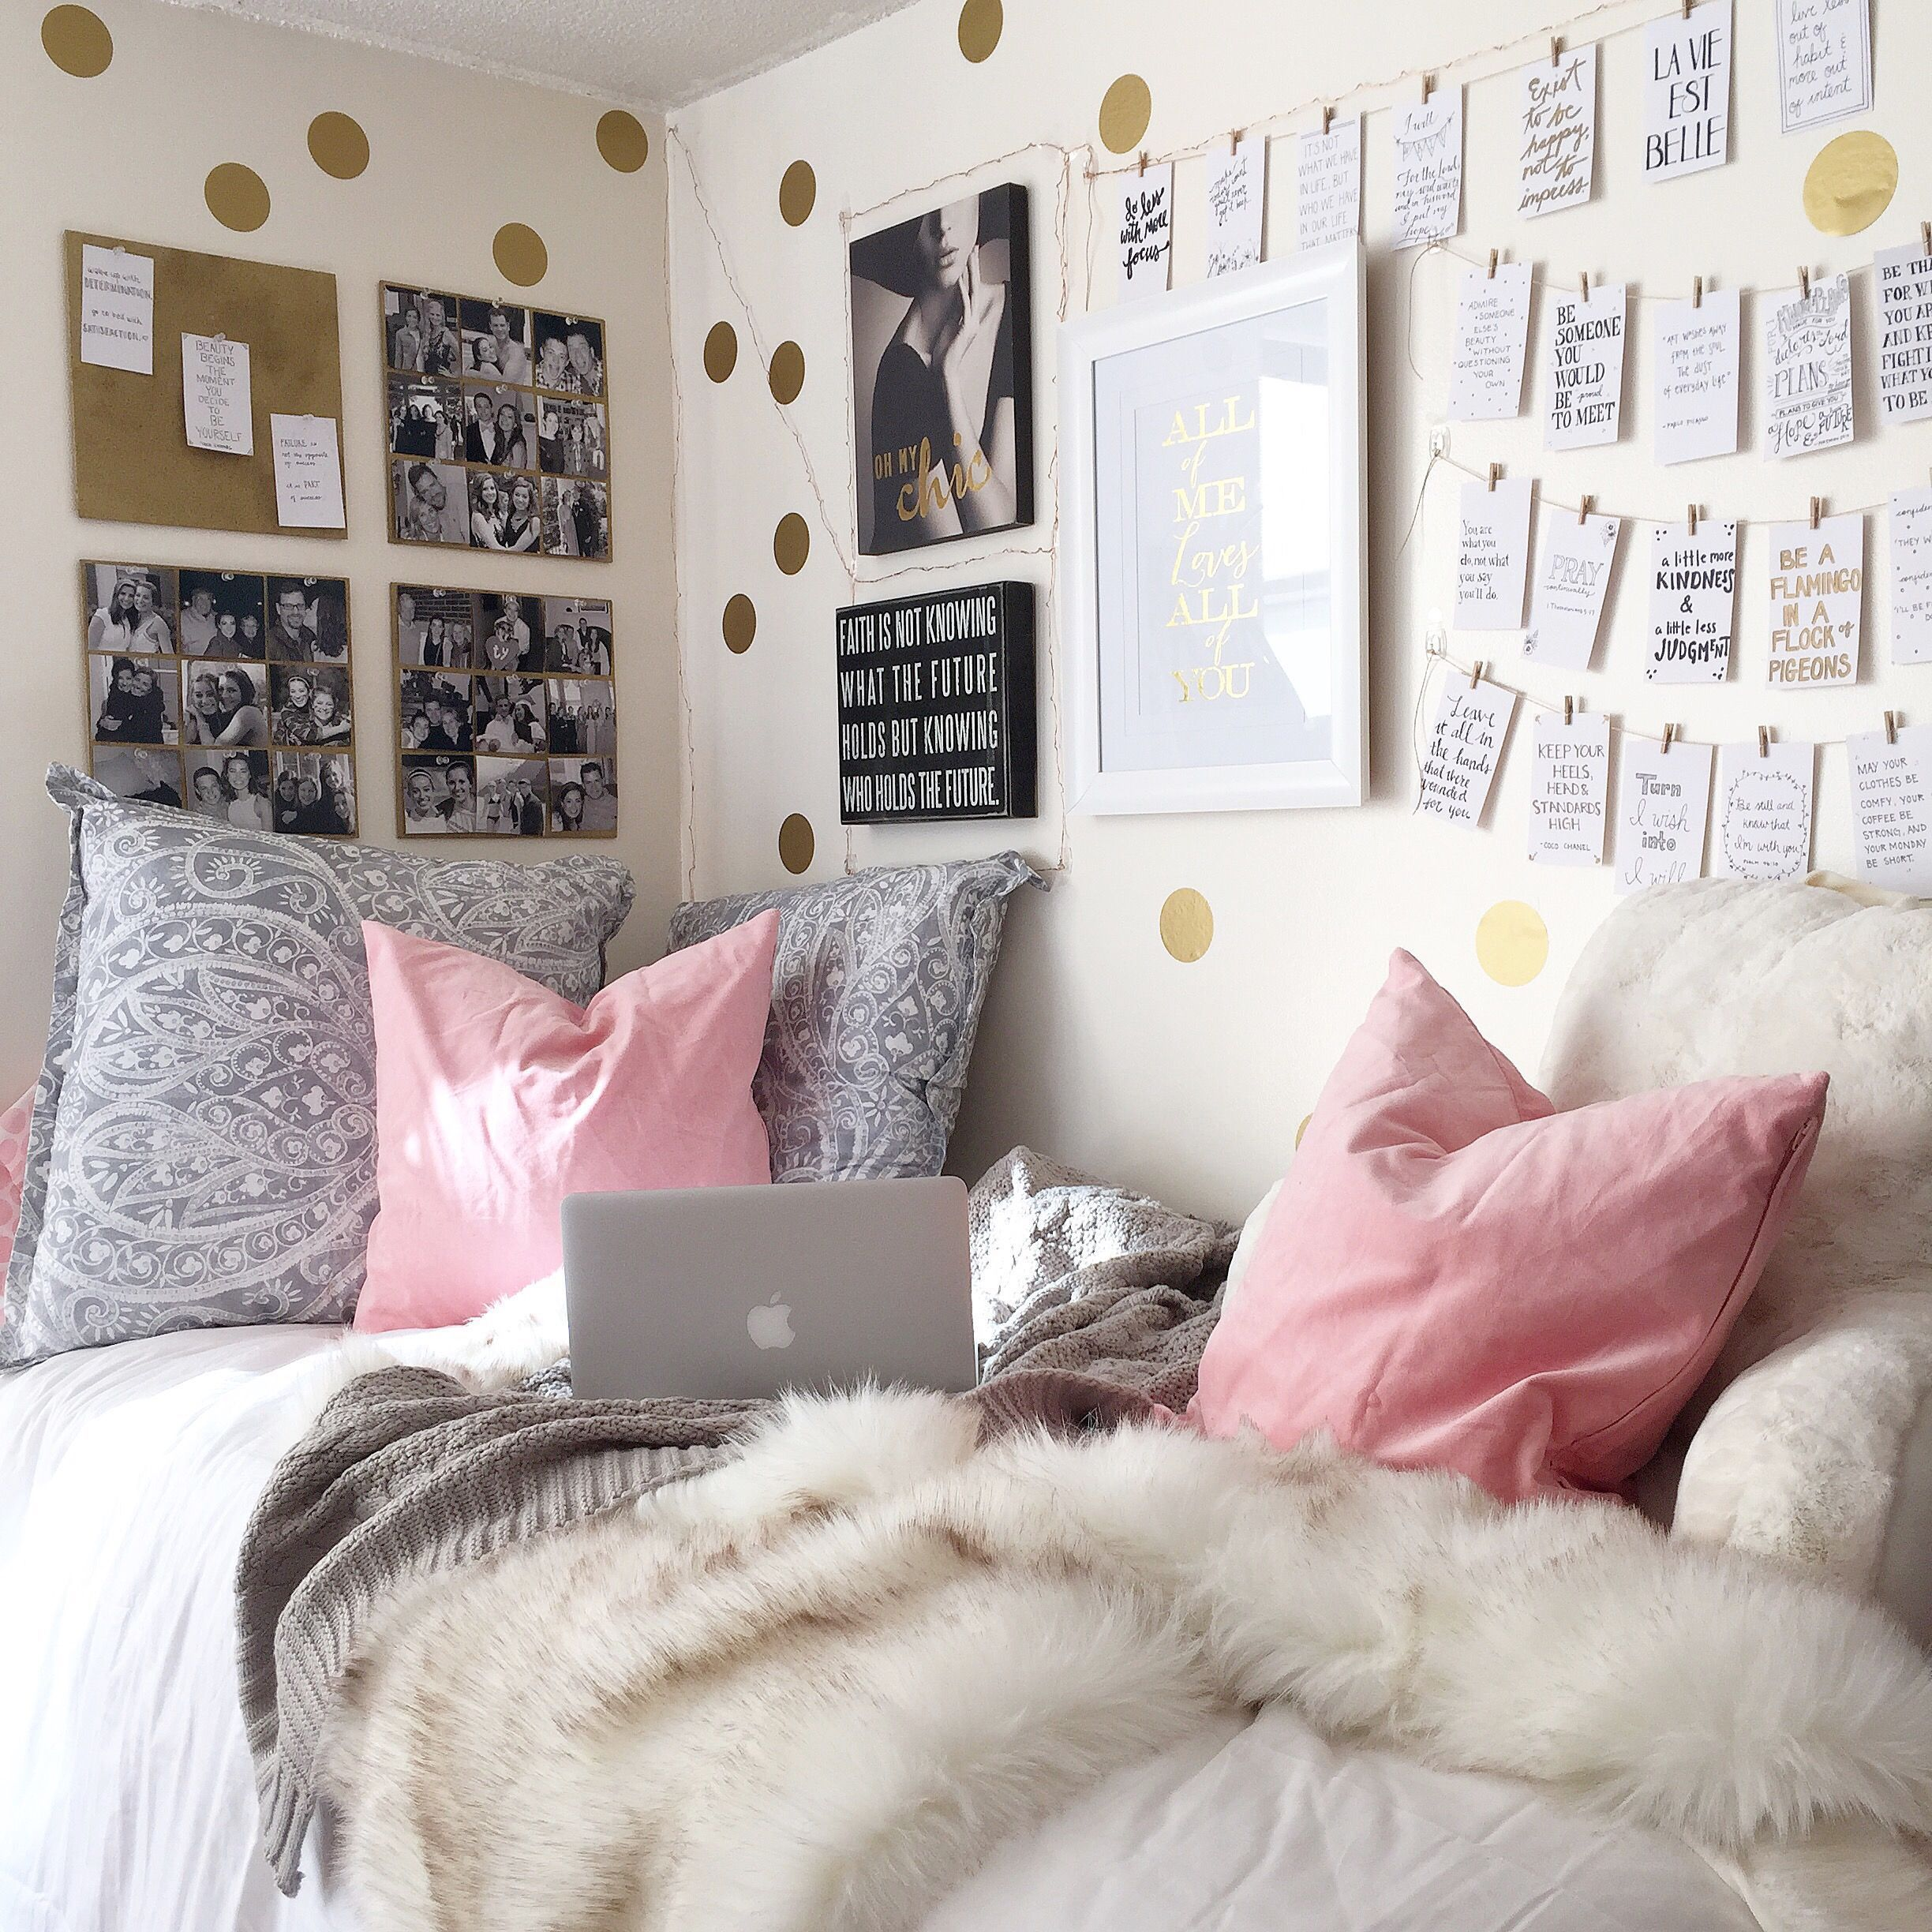 Cute Girl Bedroom Ideas Your Daughter Will Love A Room Filled With Color Patterns And Cute Accessories Cli Cool Dorm Rooms Girls Dorm Room Dorm Room Decor